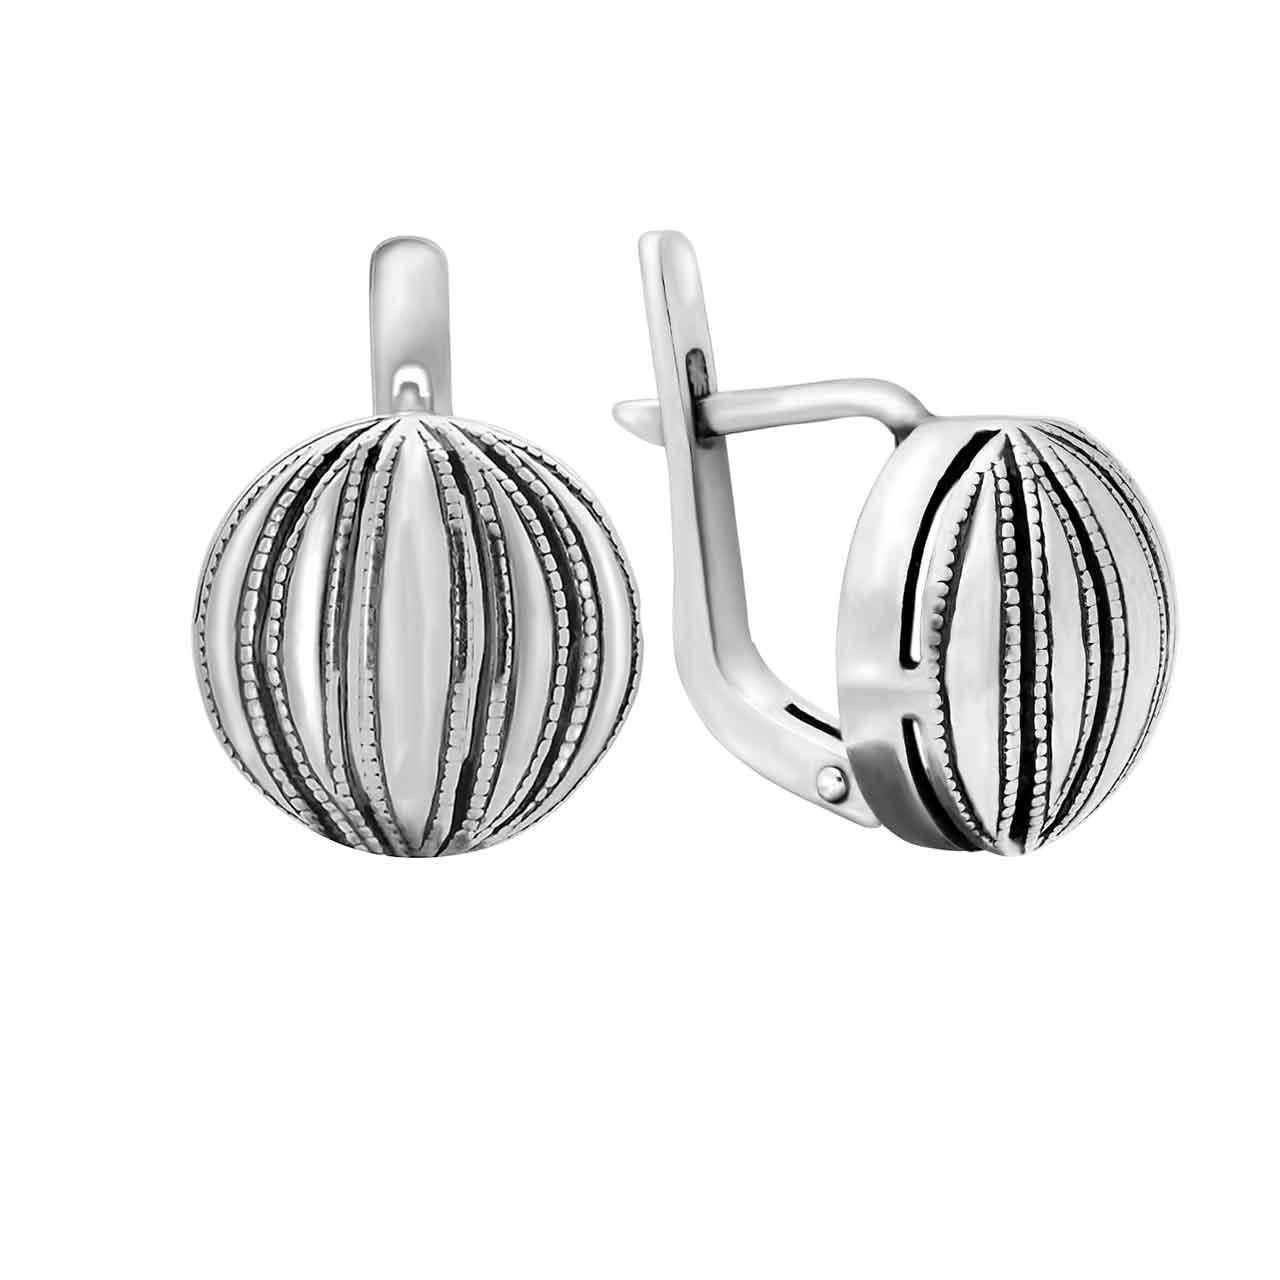 Niello silver earrings 1